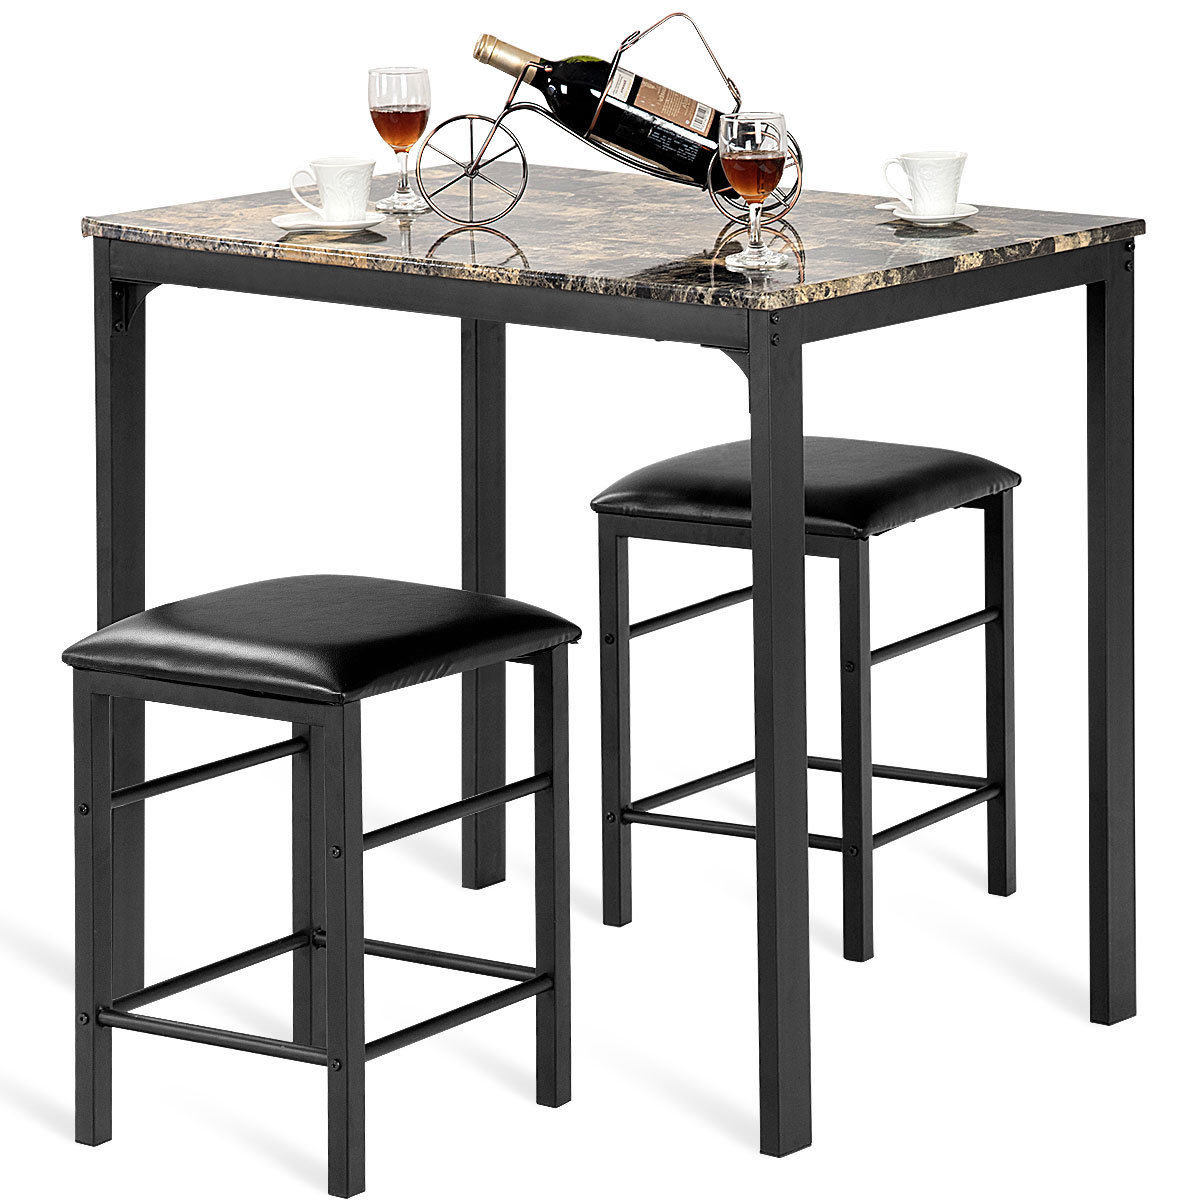 Wayfair Pertaining To Askern 3 Piece Counter Height Dining Sets (Set Of 3) (View 18 of 25)